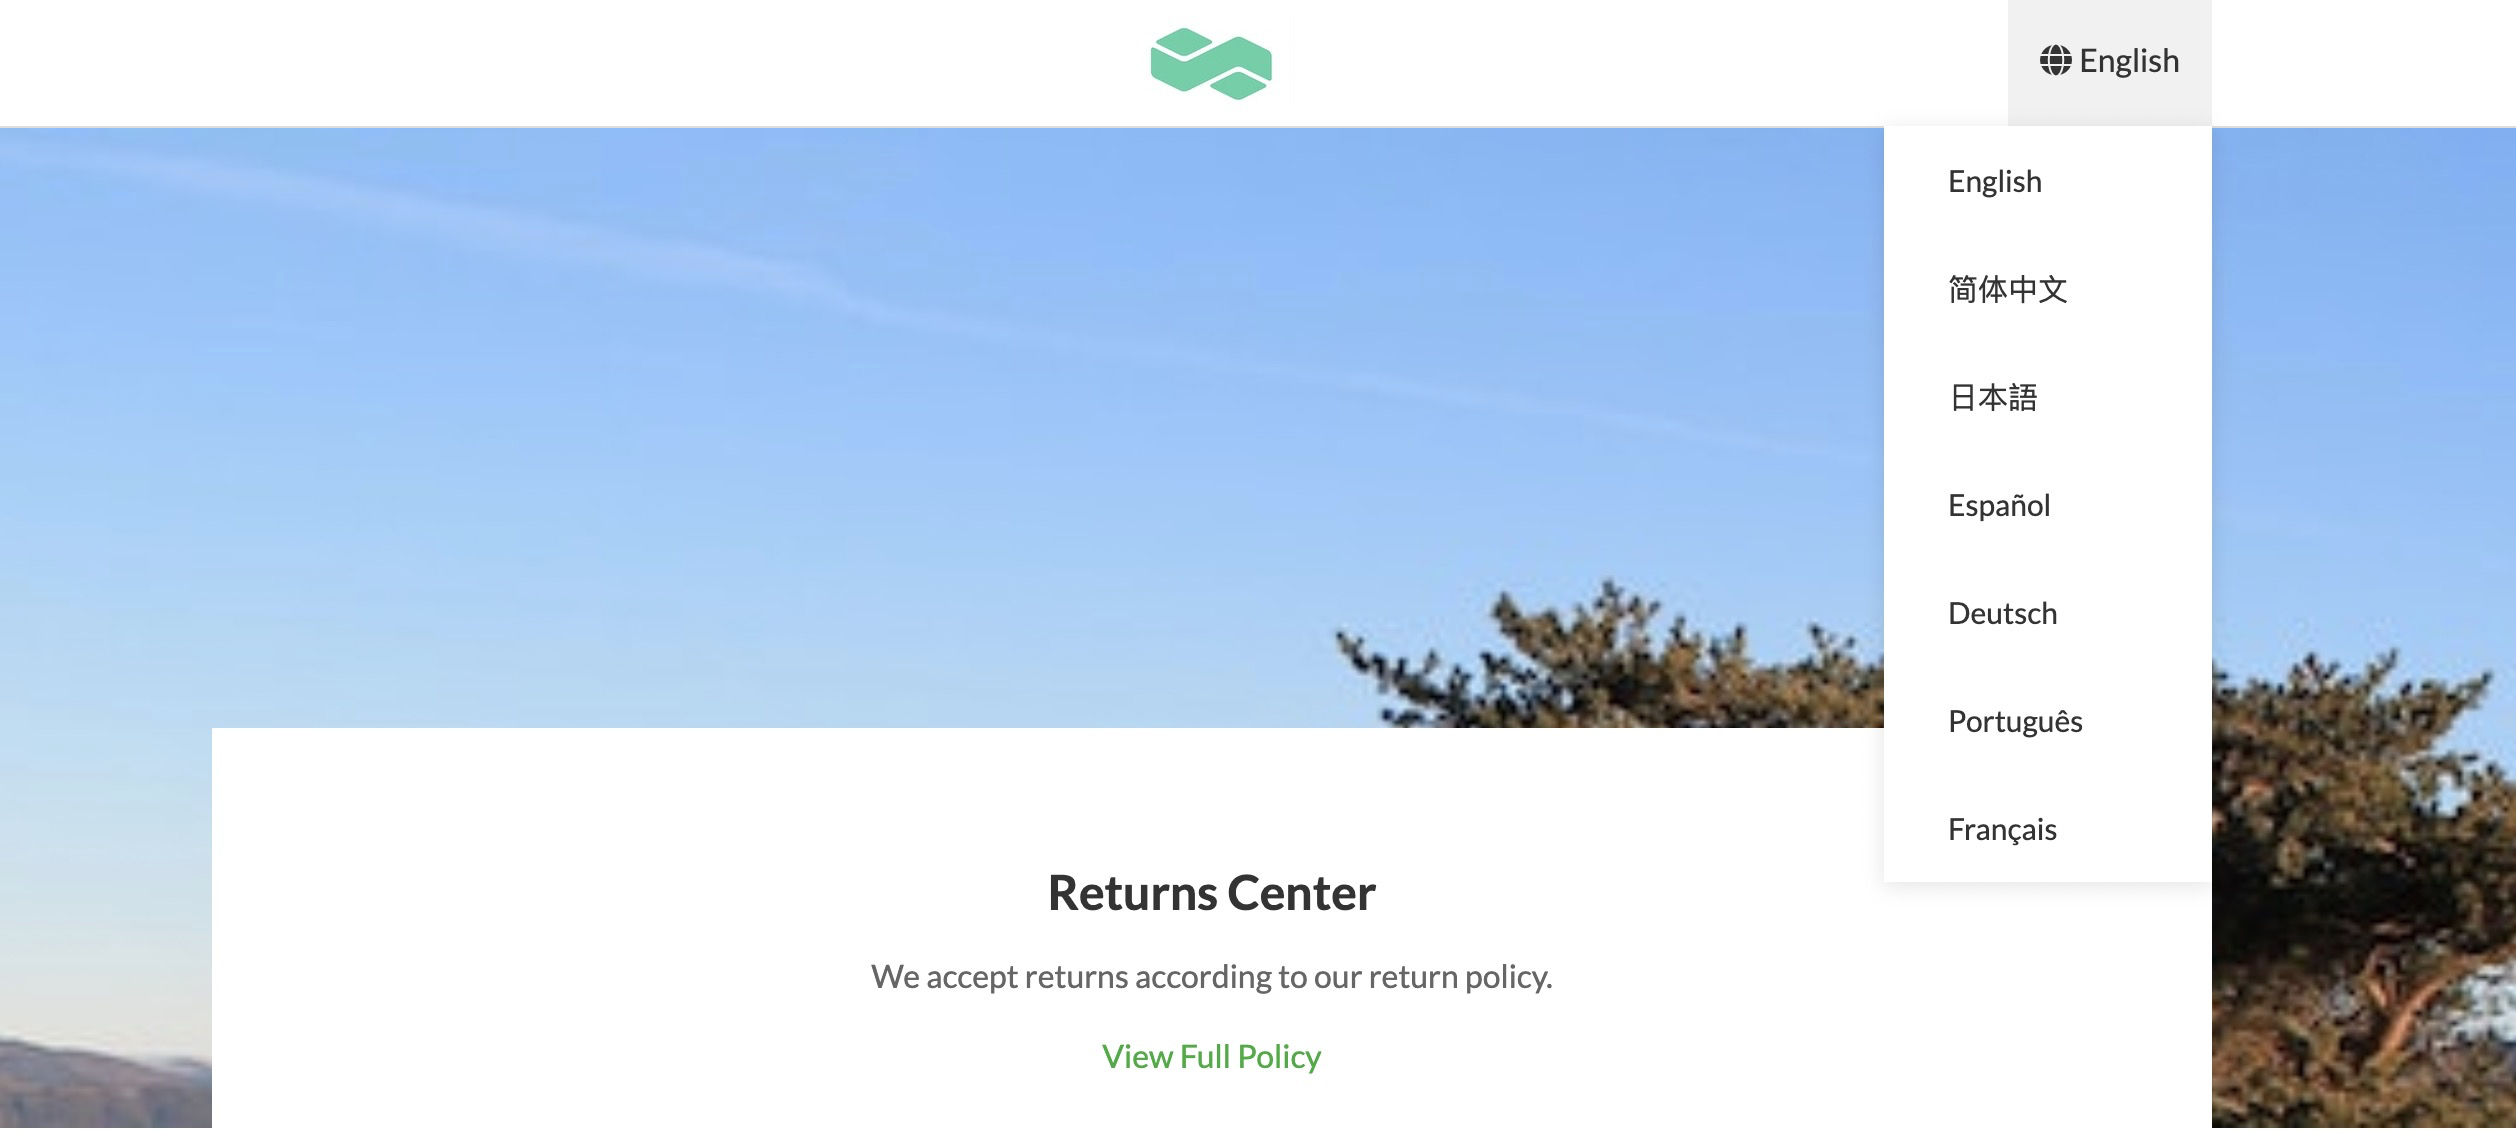 Product Update: Multi-language Branded Returns Page